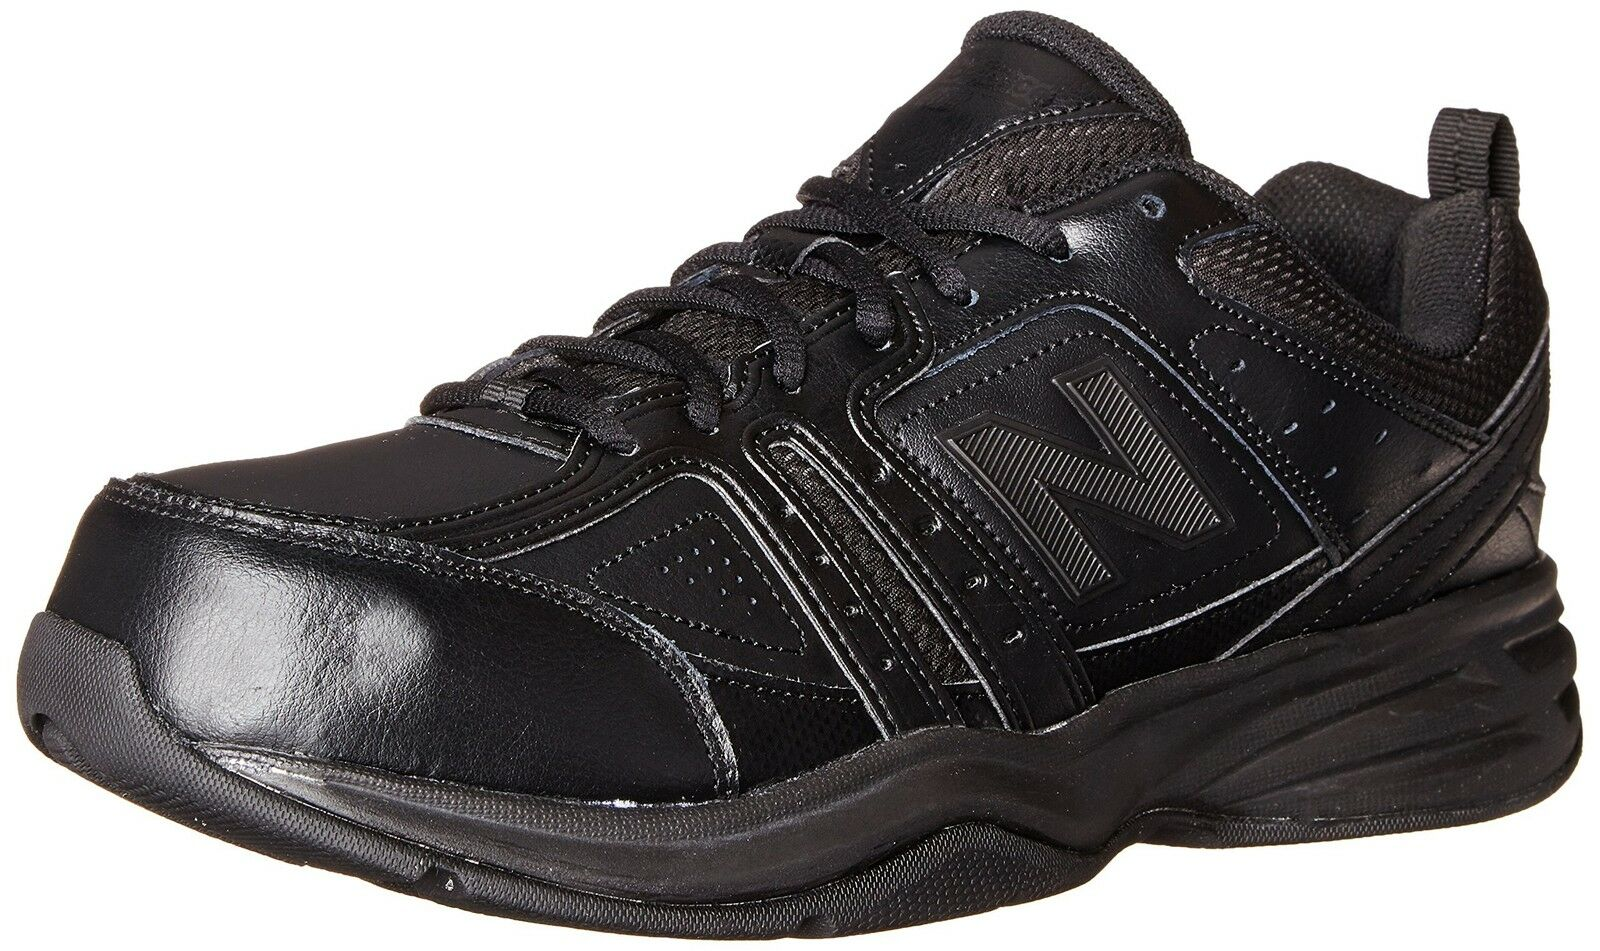 New Balance Men's MX409 Cross-Training shoes,Black,8.5 D US